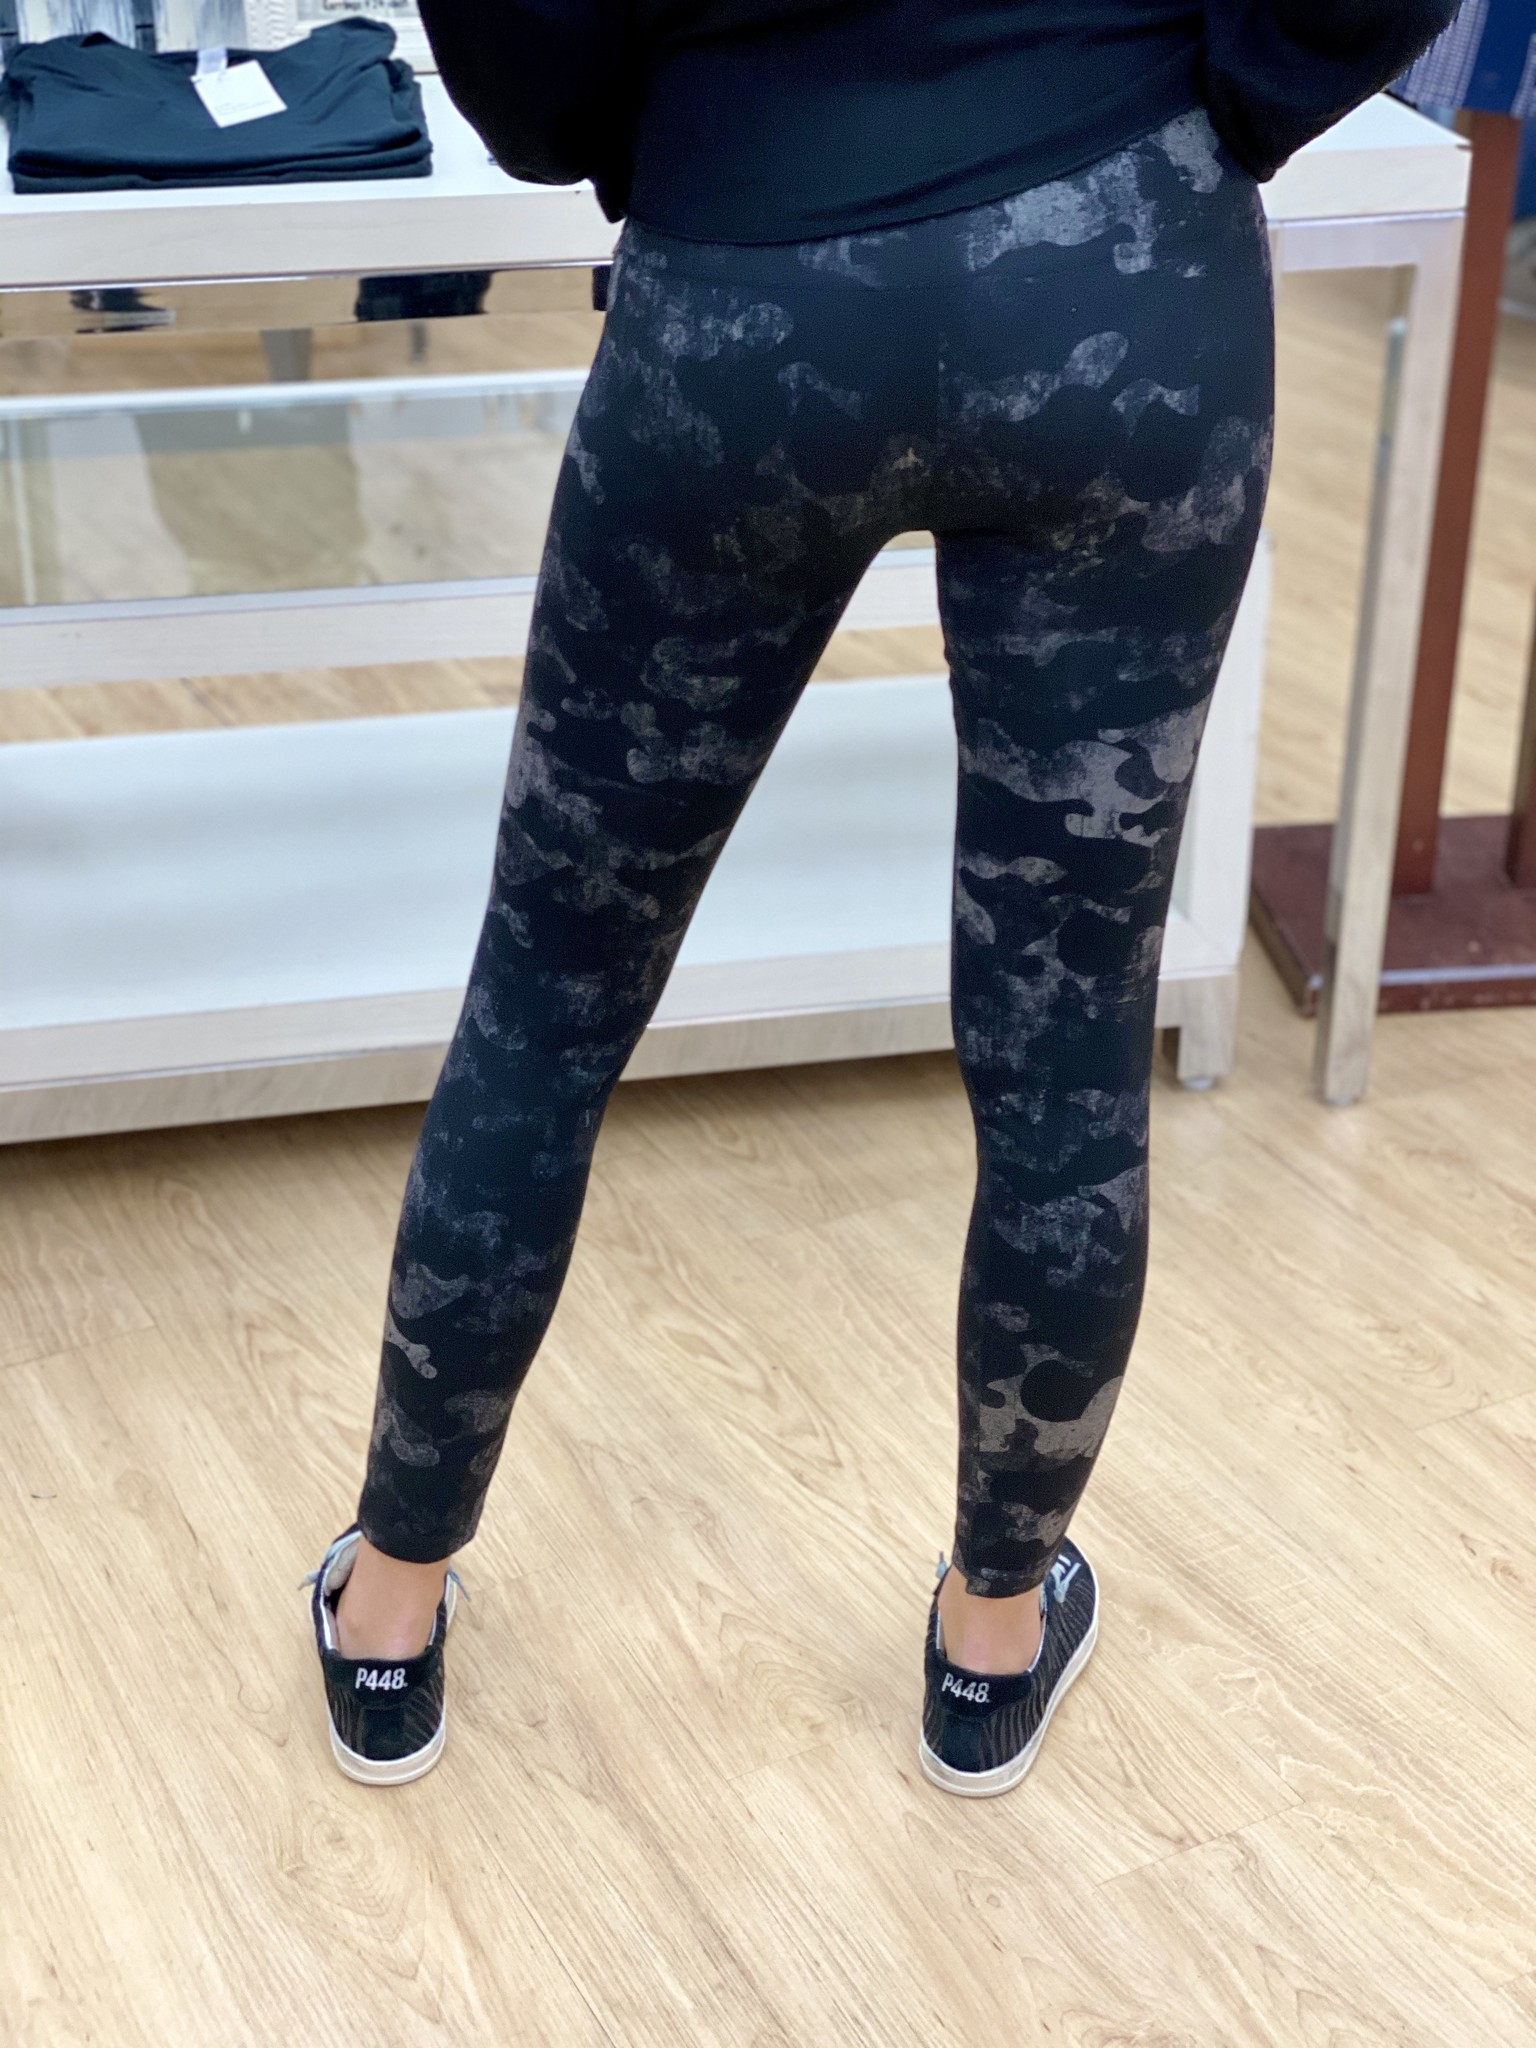 M.Rena High Waist Full Length Legging w/ Distressed Camo